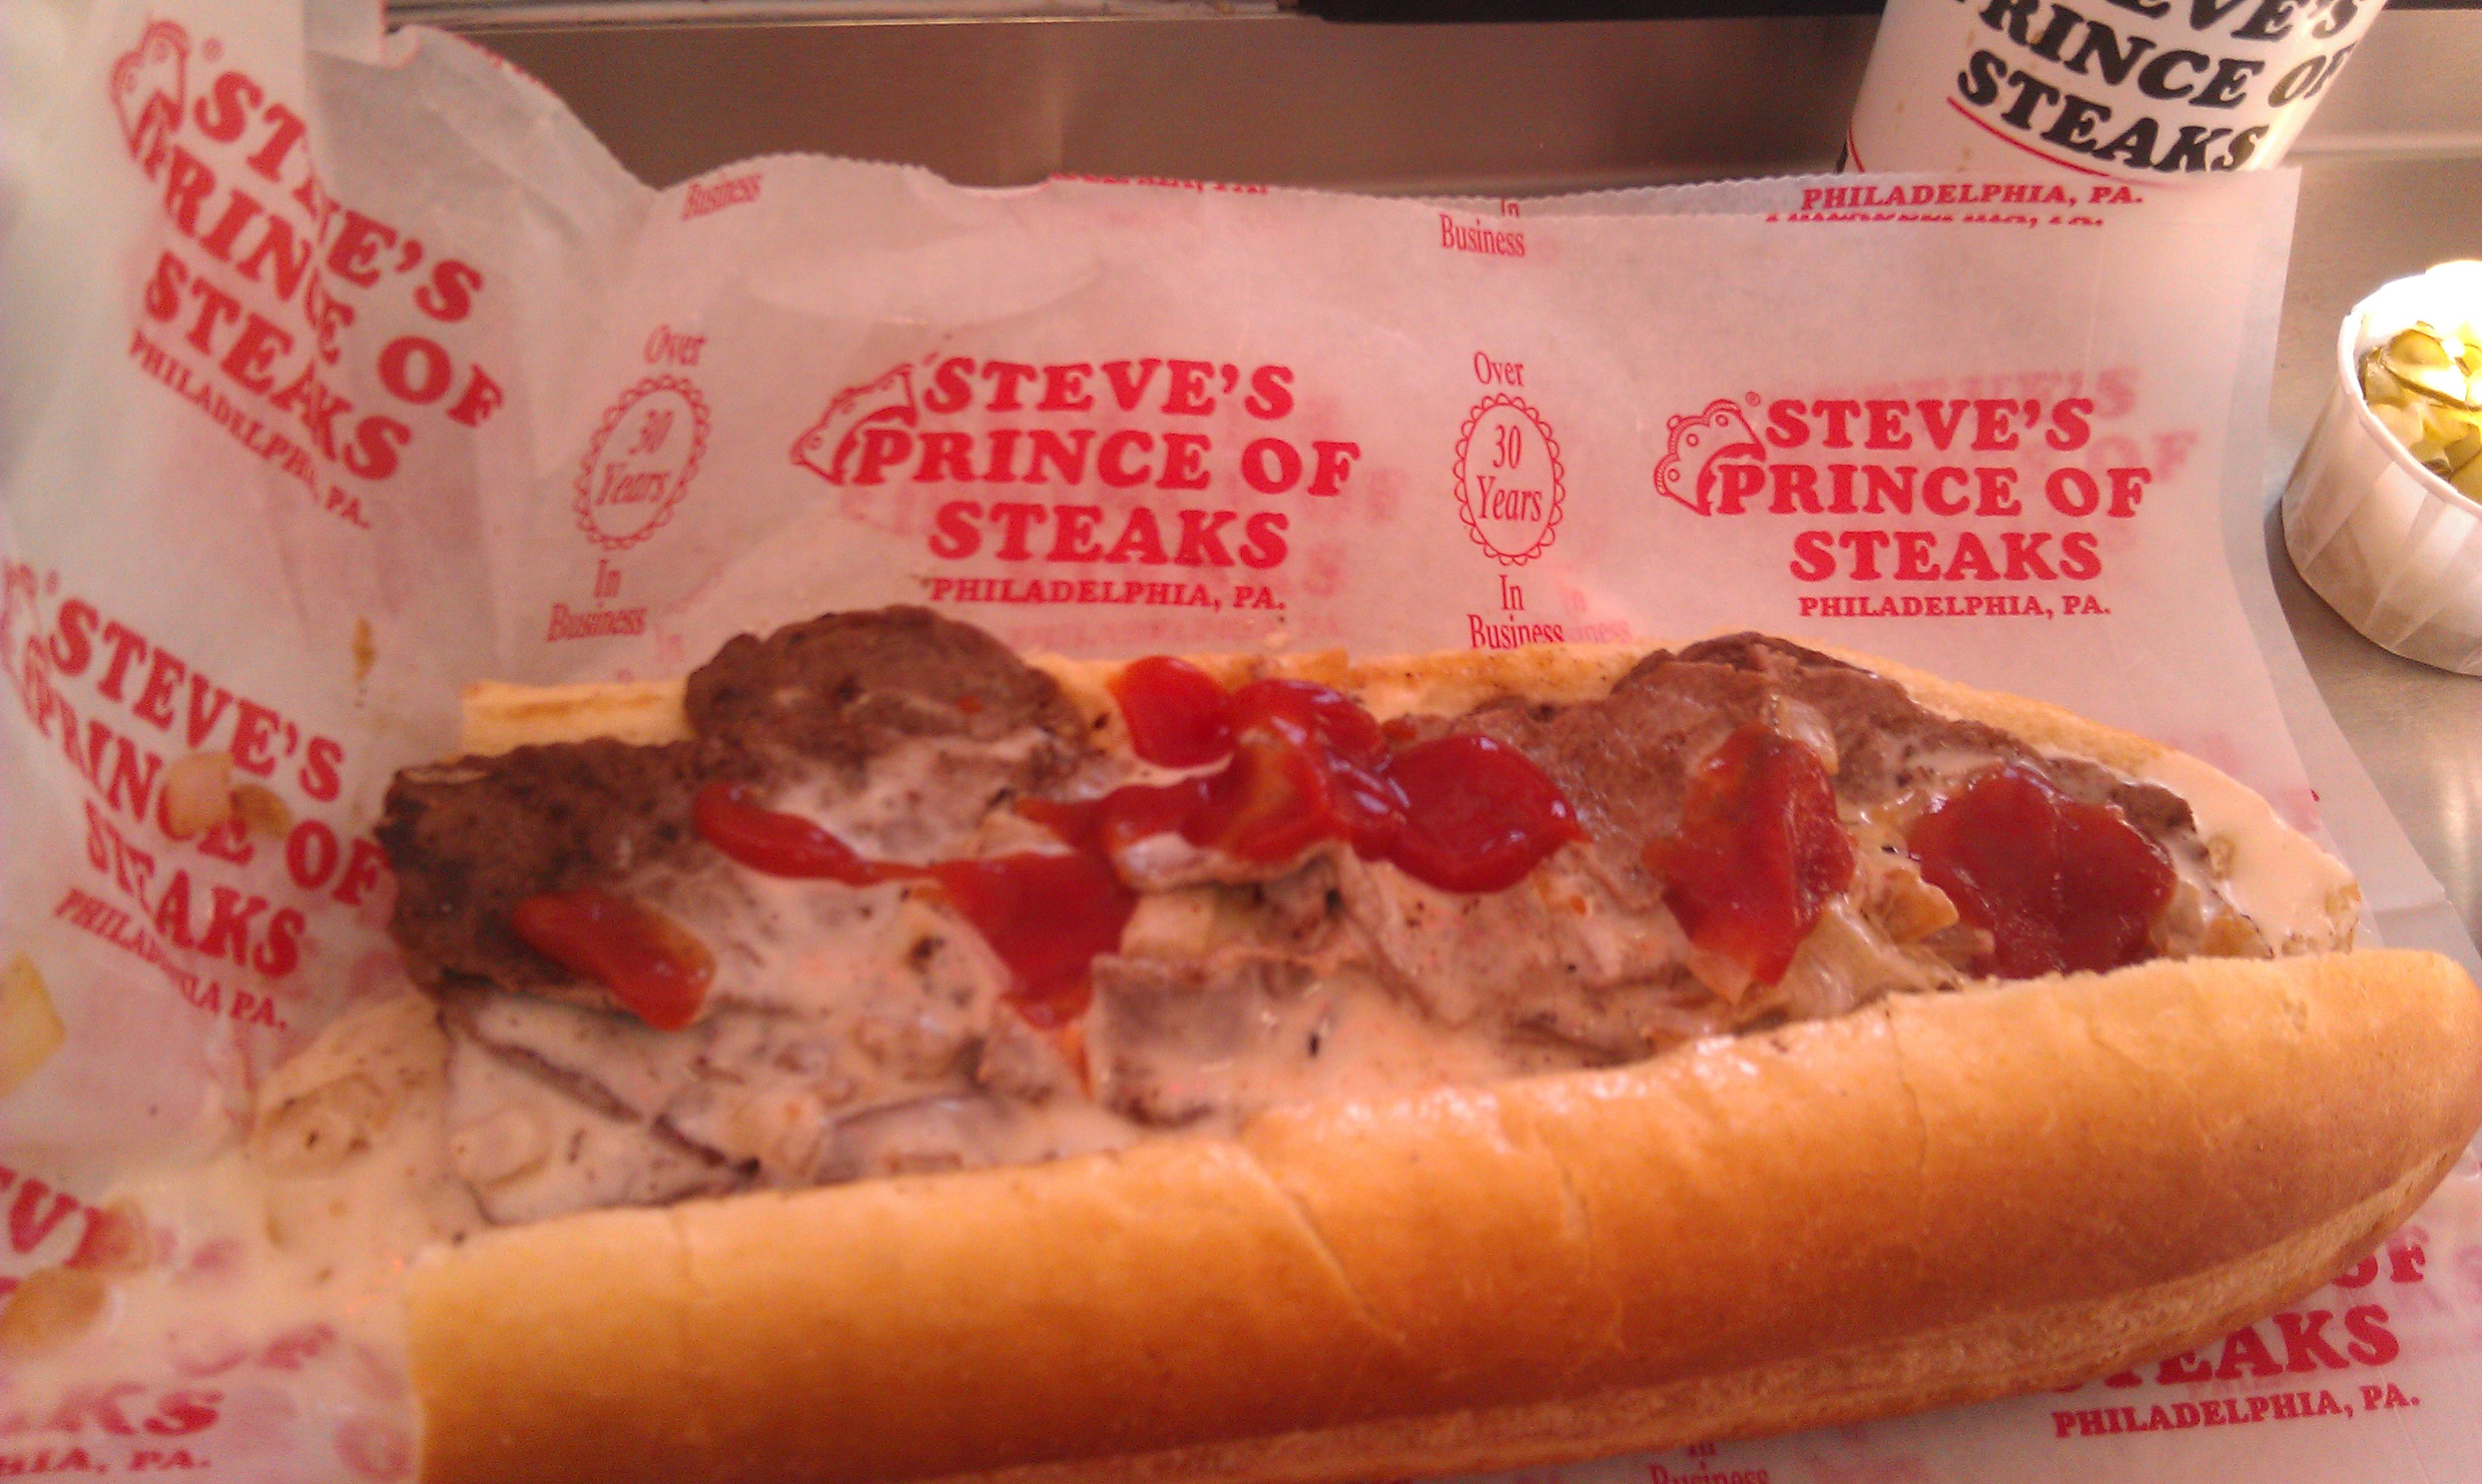 The Best Cheese Steak in Philadelphia